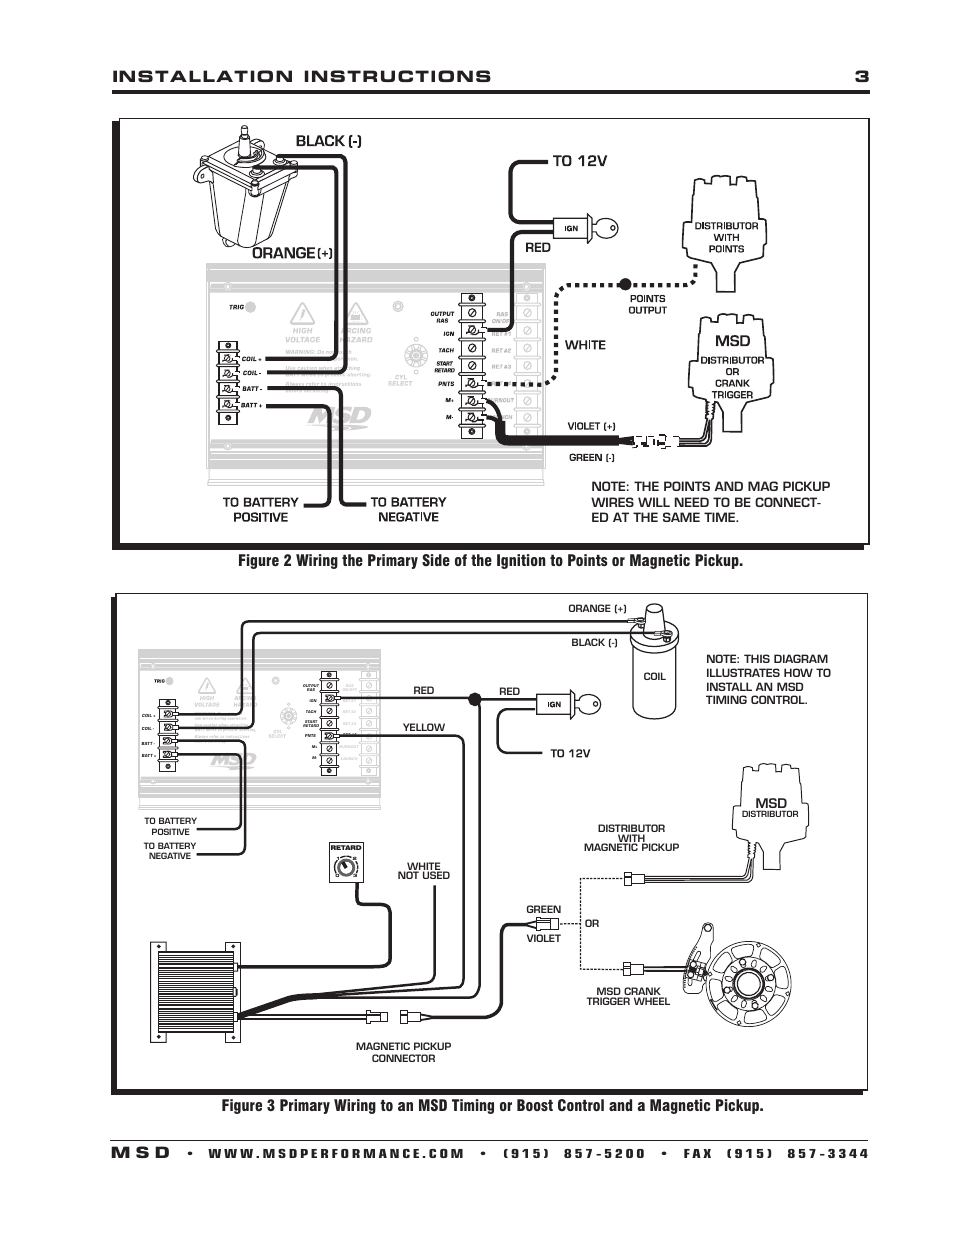 ignition coil distributor wiring diagram ritetemp 8022 thermostat installation instructions 3 m s d | msd 7330 7al-3 control user manual ...